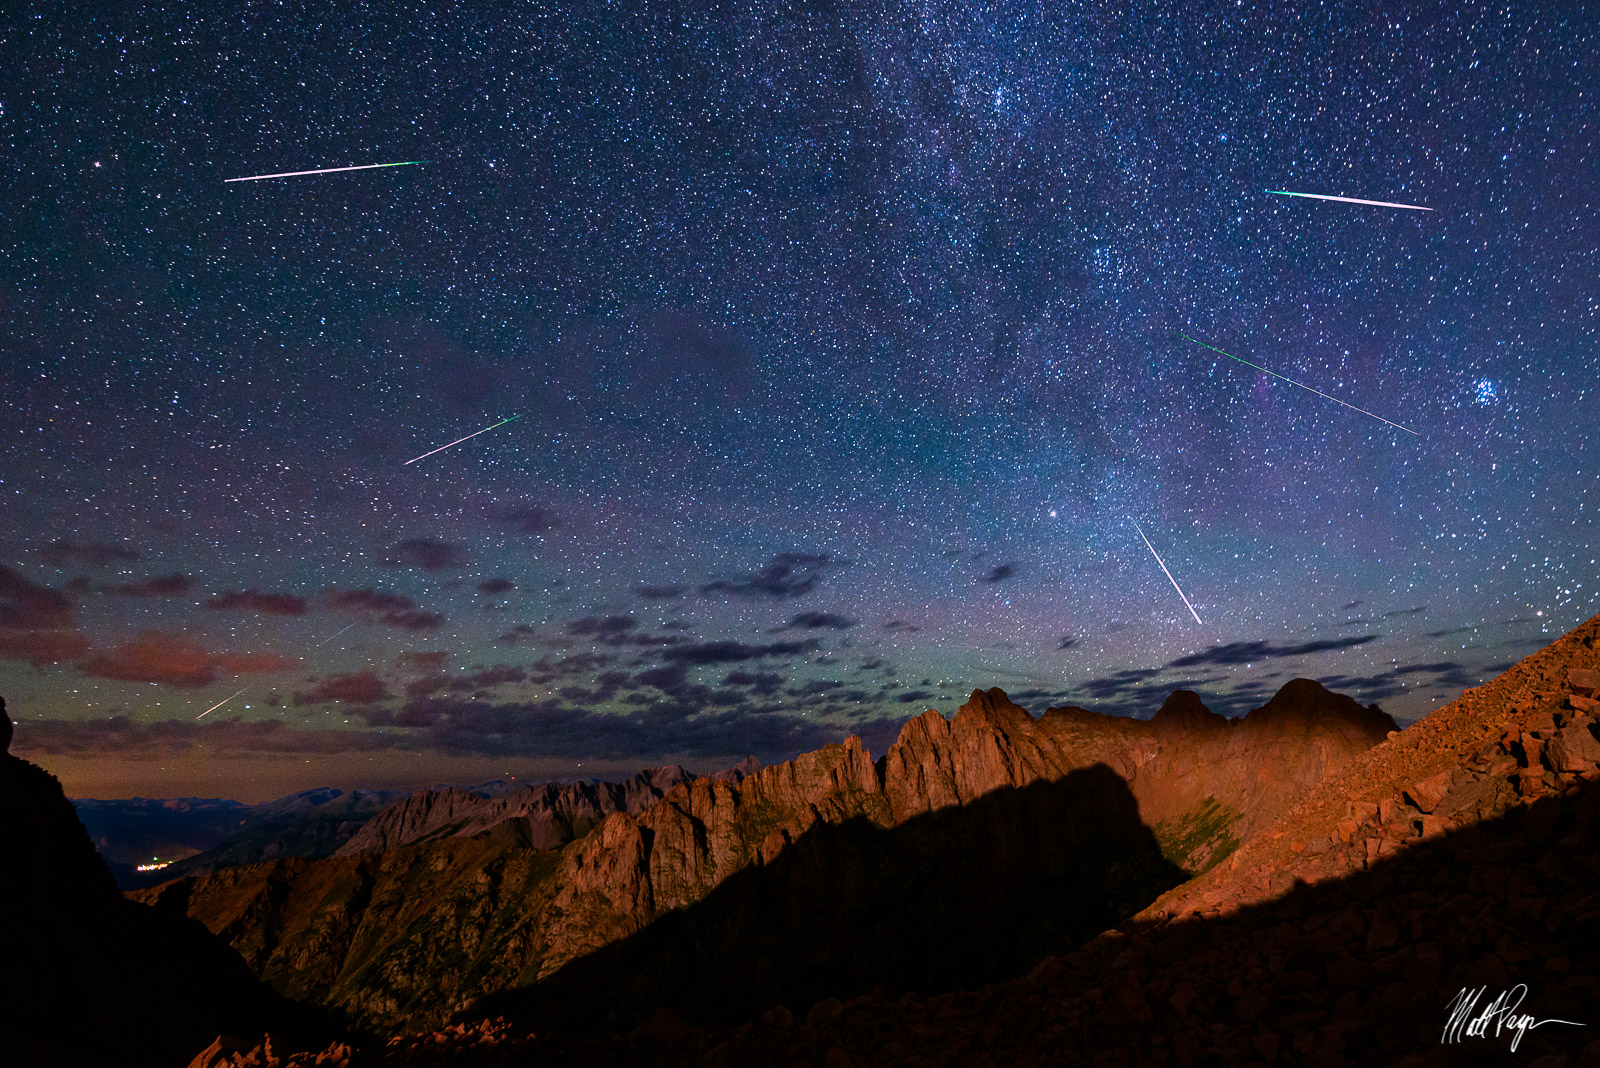 13ers, Animas Mountain, Colorado, Durango, Needle Range, Landscape, Meteor Shower, Monitor Peak, Needle Range, Night, Perseid Meteor Shower, San Juan Mountains, Silverton, magical, stars, Landscape Ph, photo